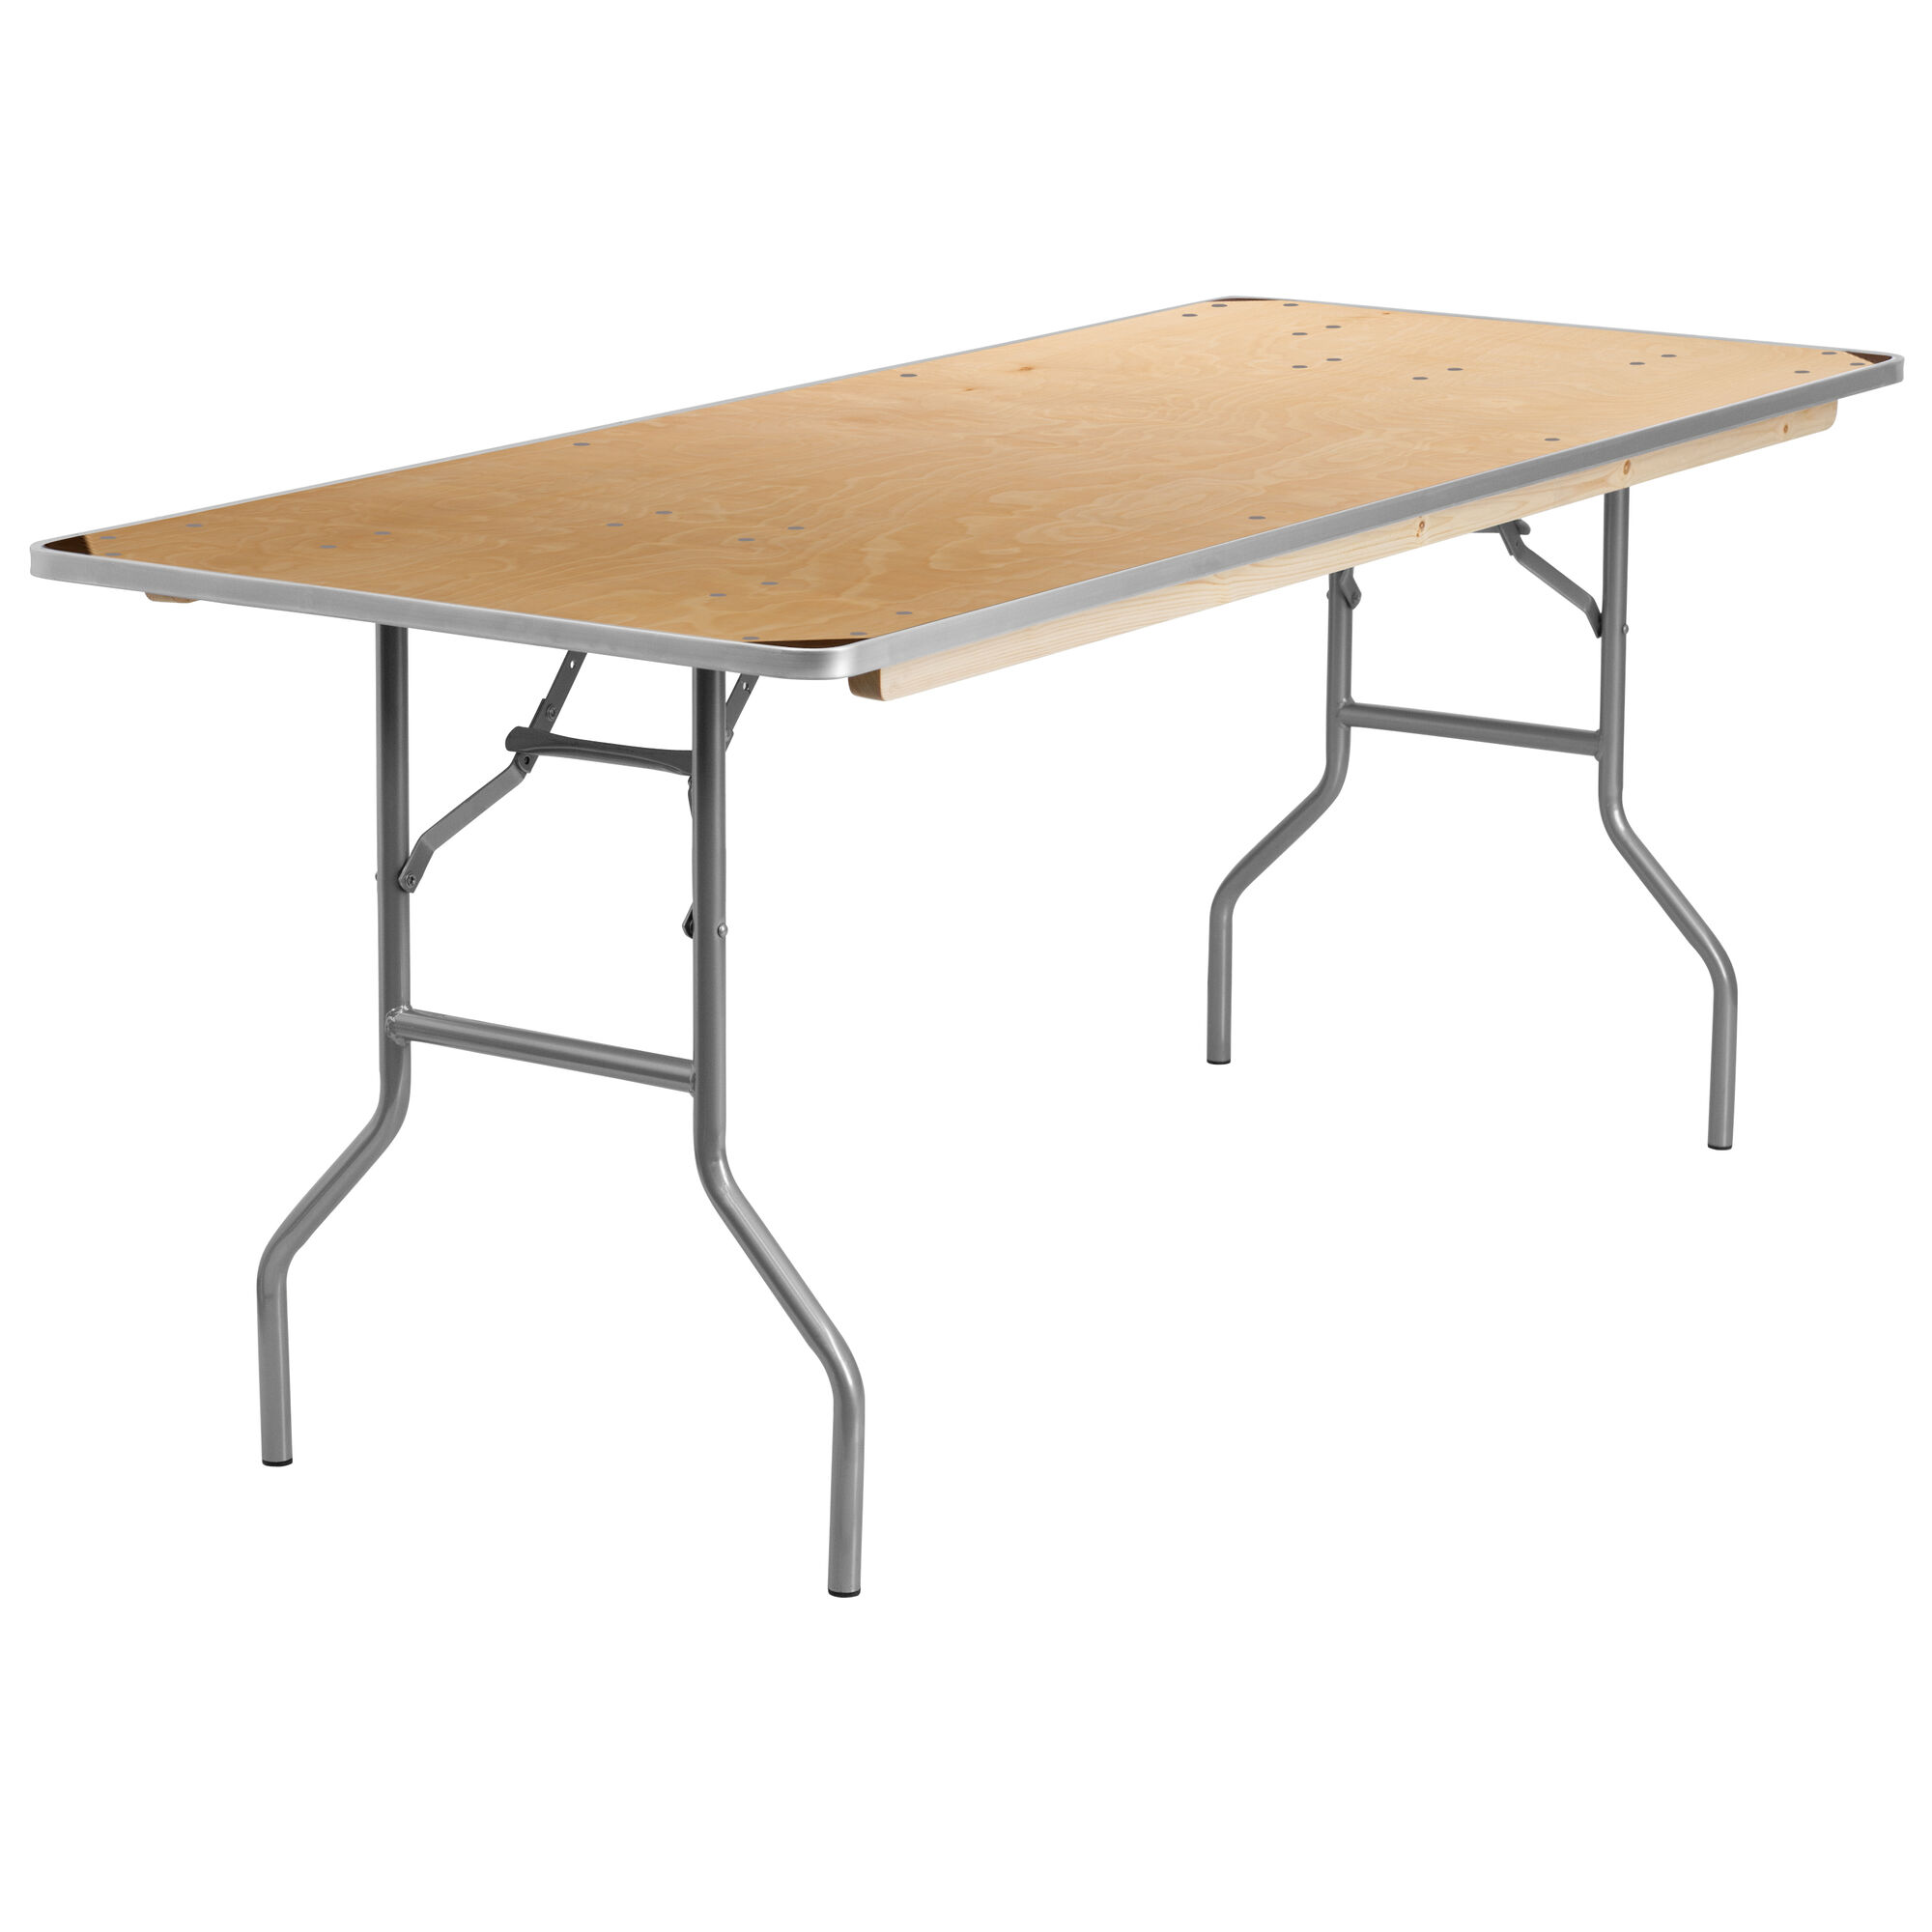 edges x restaurant gg xa wood with table birch duty guards flash main tables corner birchwood and heavy metal folding m furniture image rectangular protective banquet